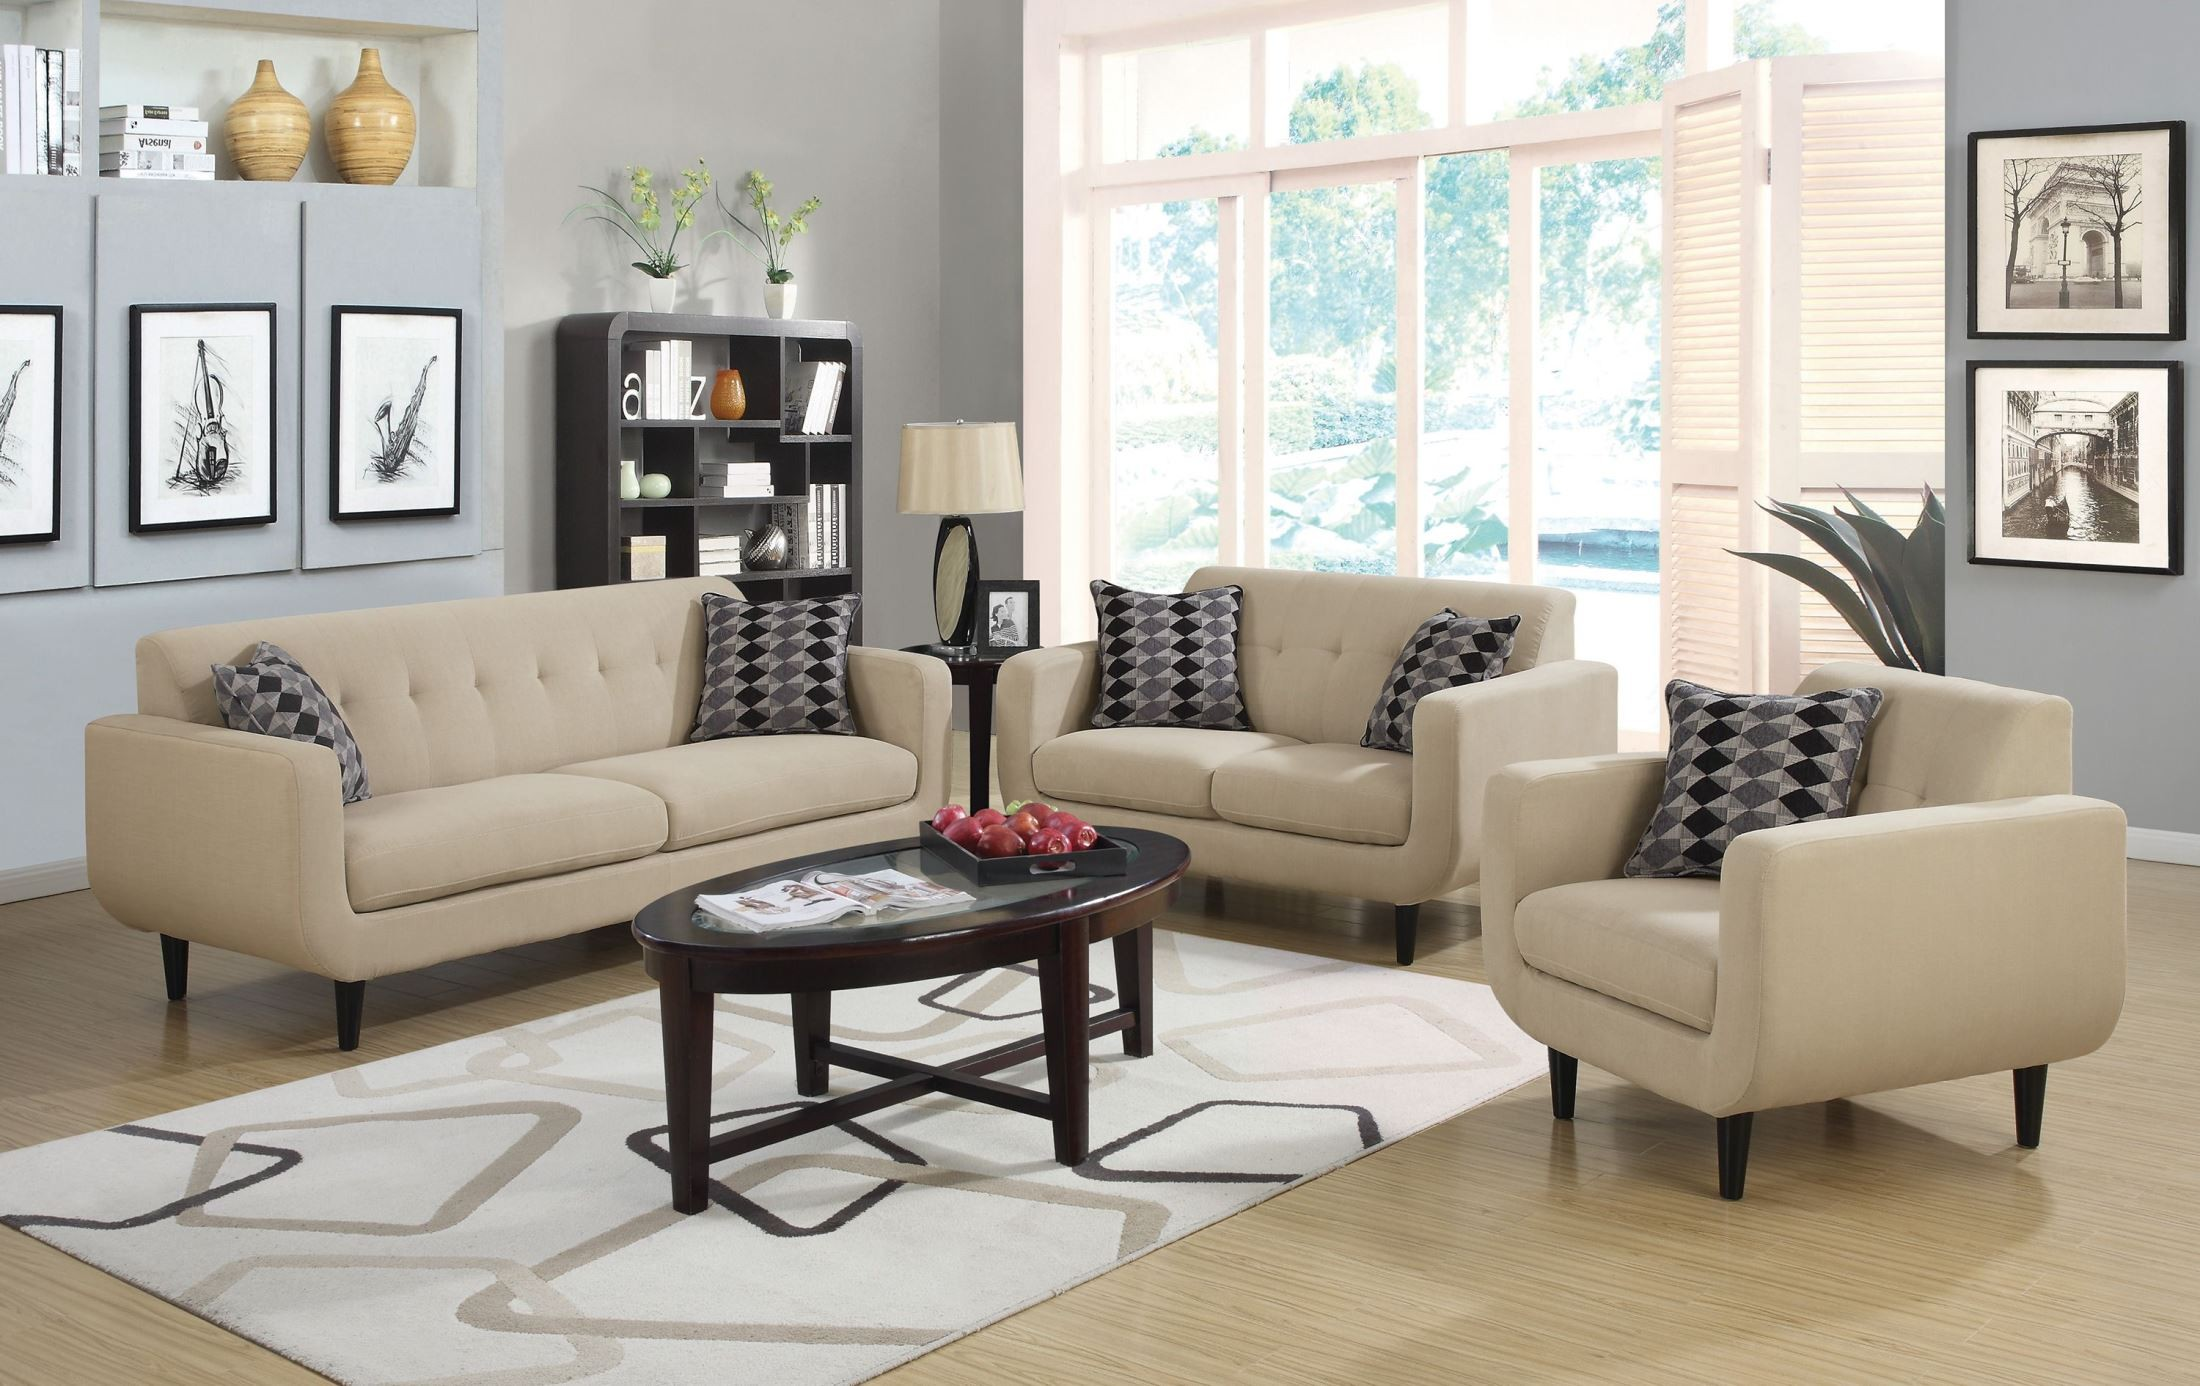 Stansall Ivory Living Room Set From Coaster (505204